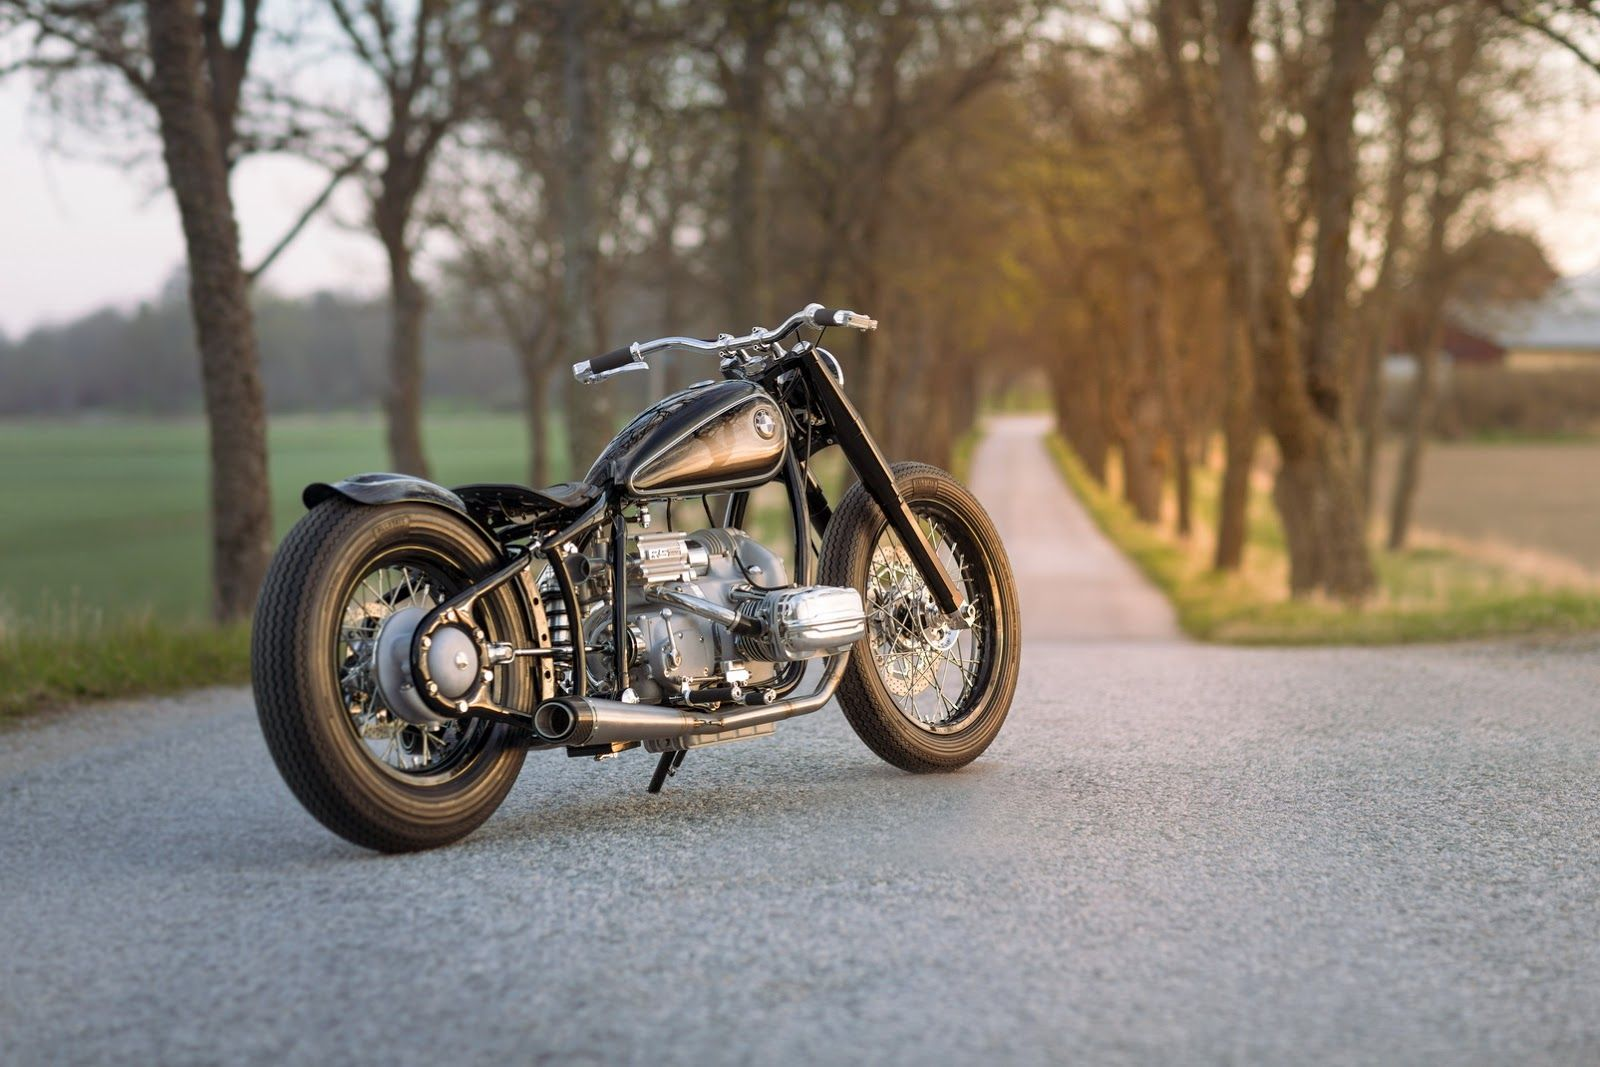 Hot off the wheels of the BMW 2002 Hommage today, the automaker's Motorrad brand (its cooler half) is also remembering something else that was great from the last century with the 1930's-styled R 5 Hommage.